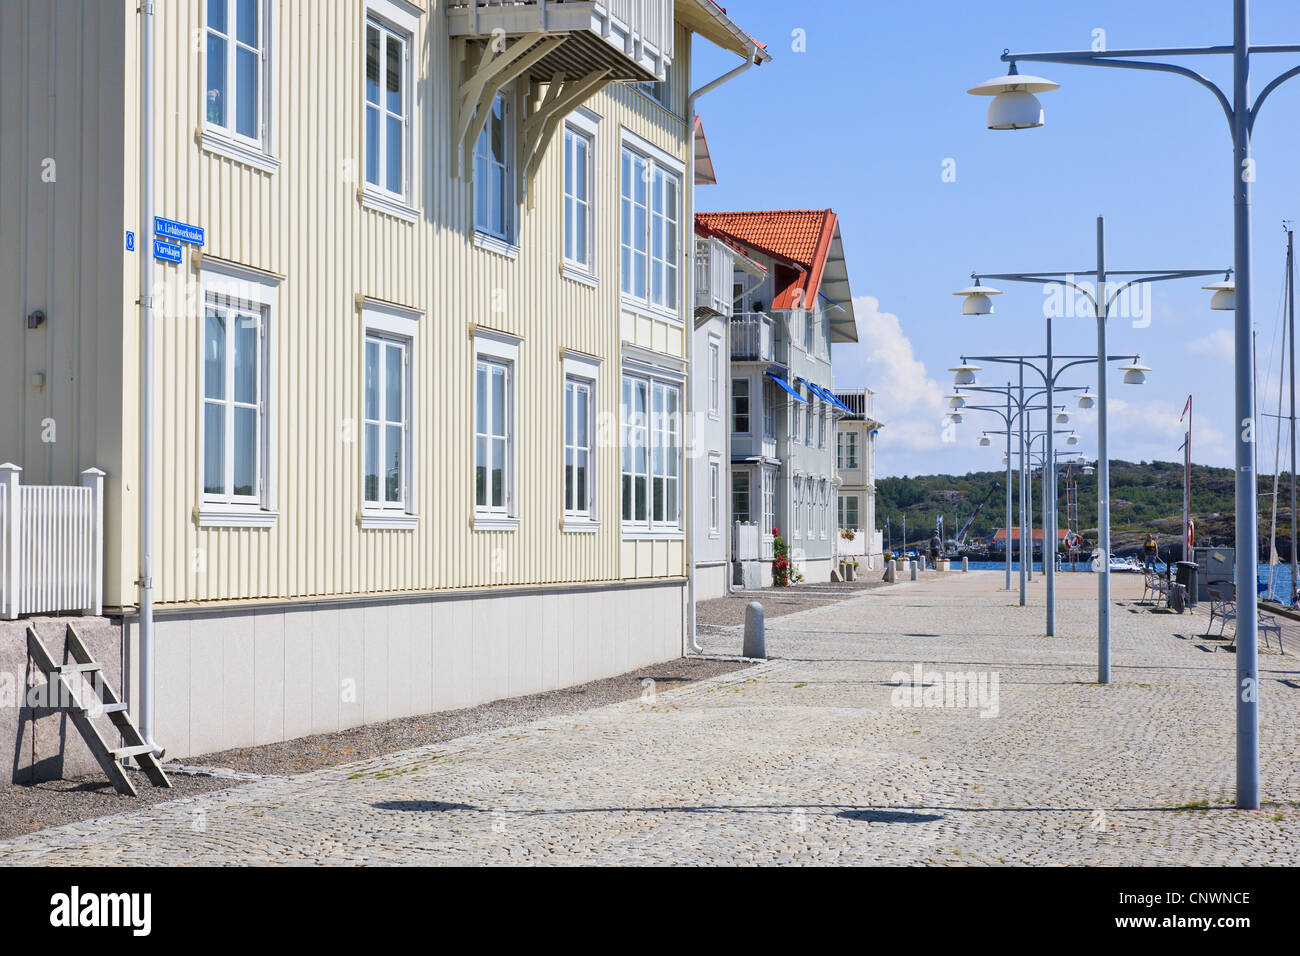 Small apartment house built on the coast with sea view, Boardwalk with street lighting - Stock Image